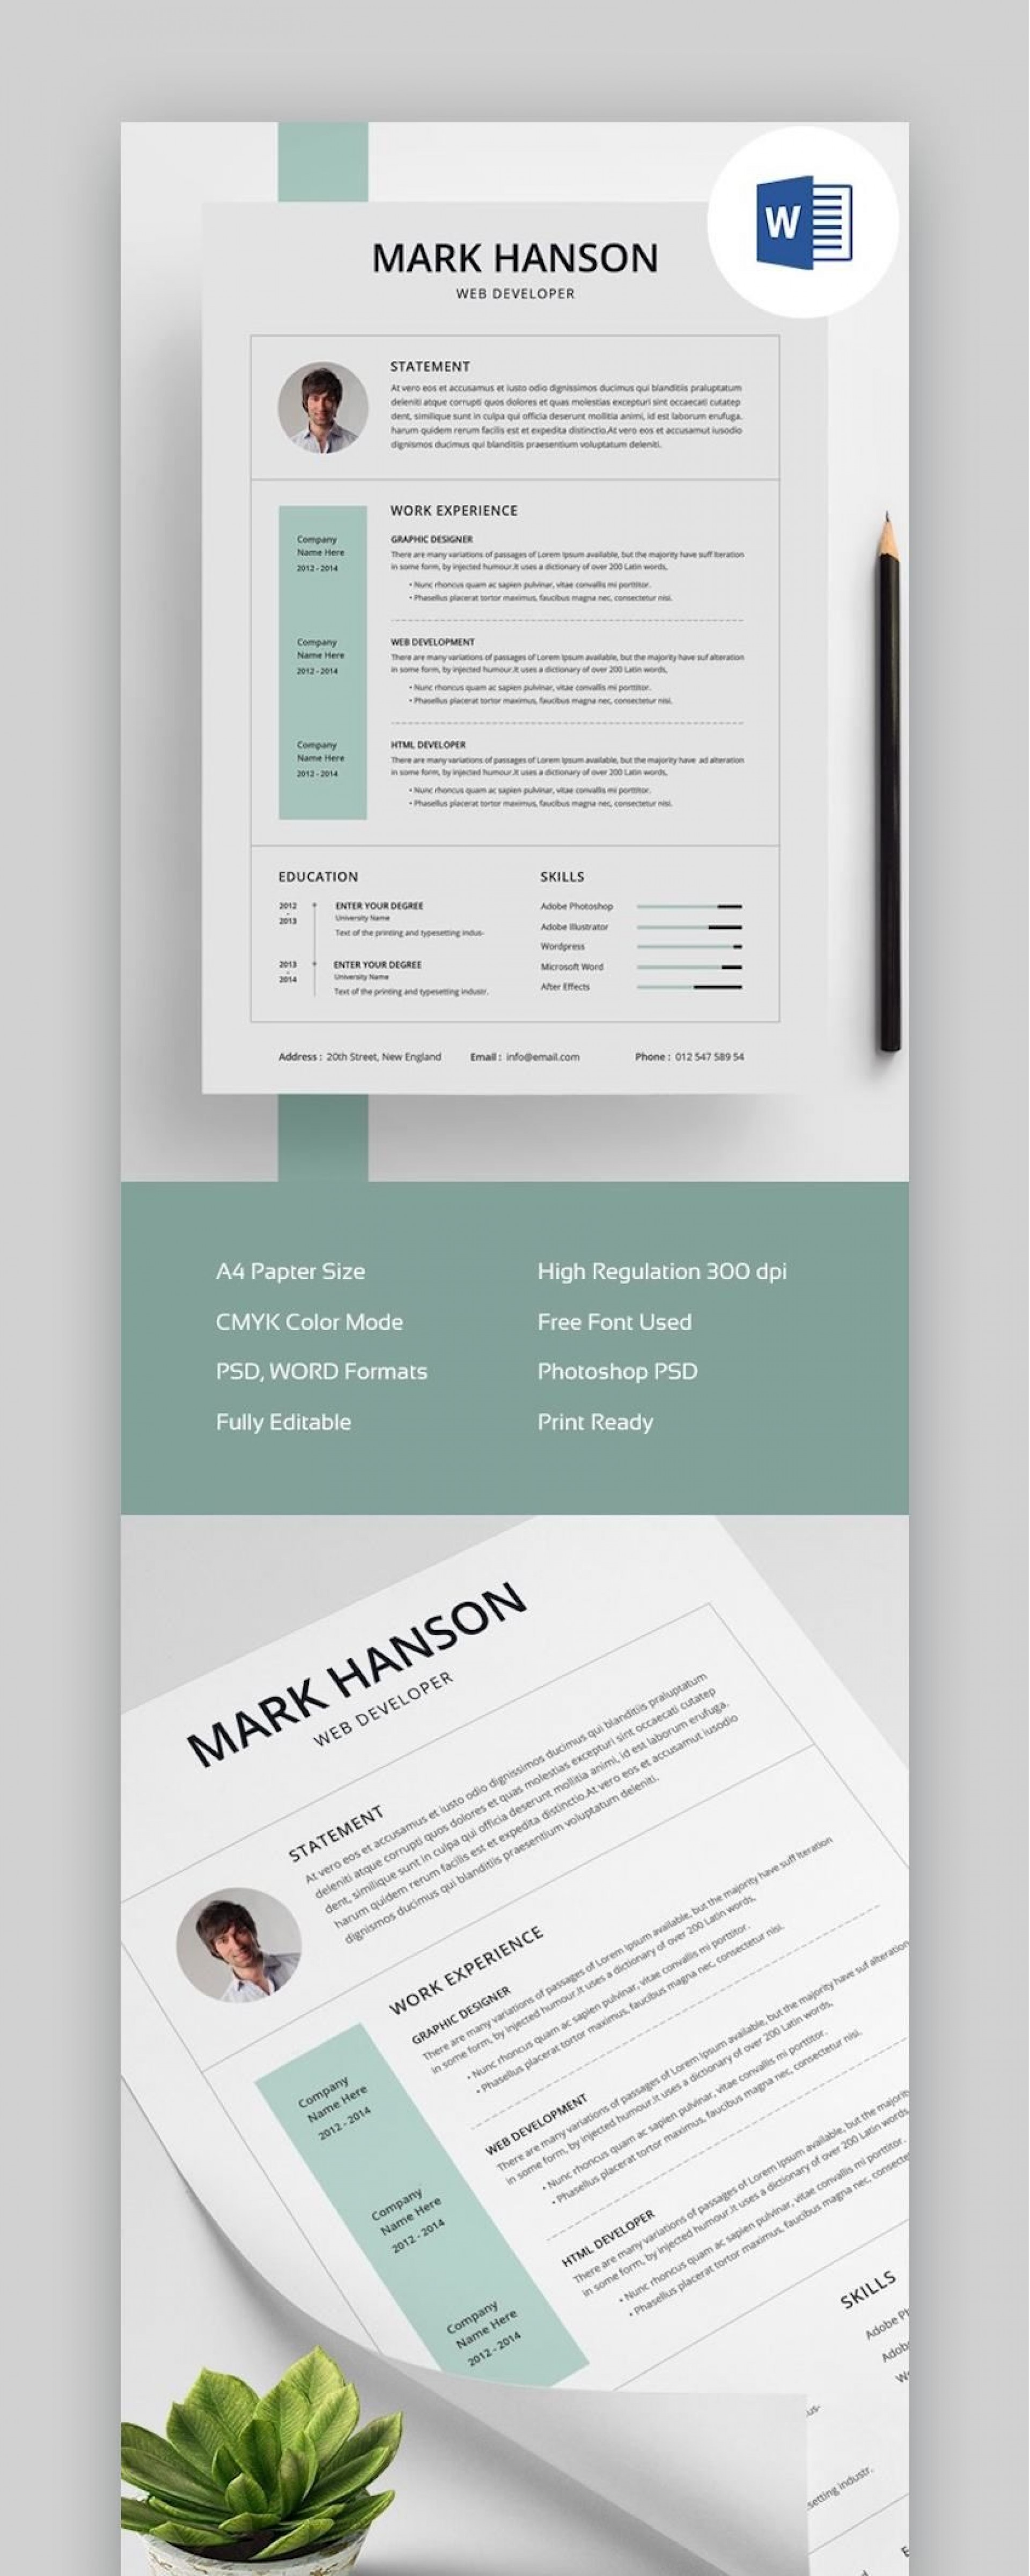 003 Astounding Creative Resume Template Word Highest Clarity  Professional Free Download Example Editable1920